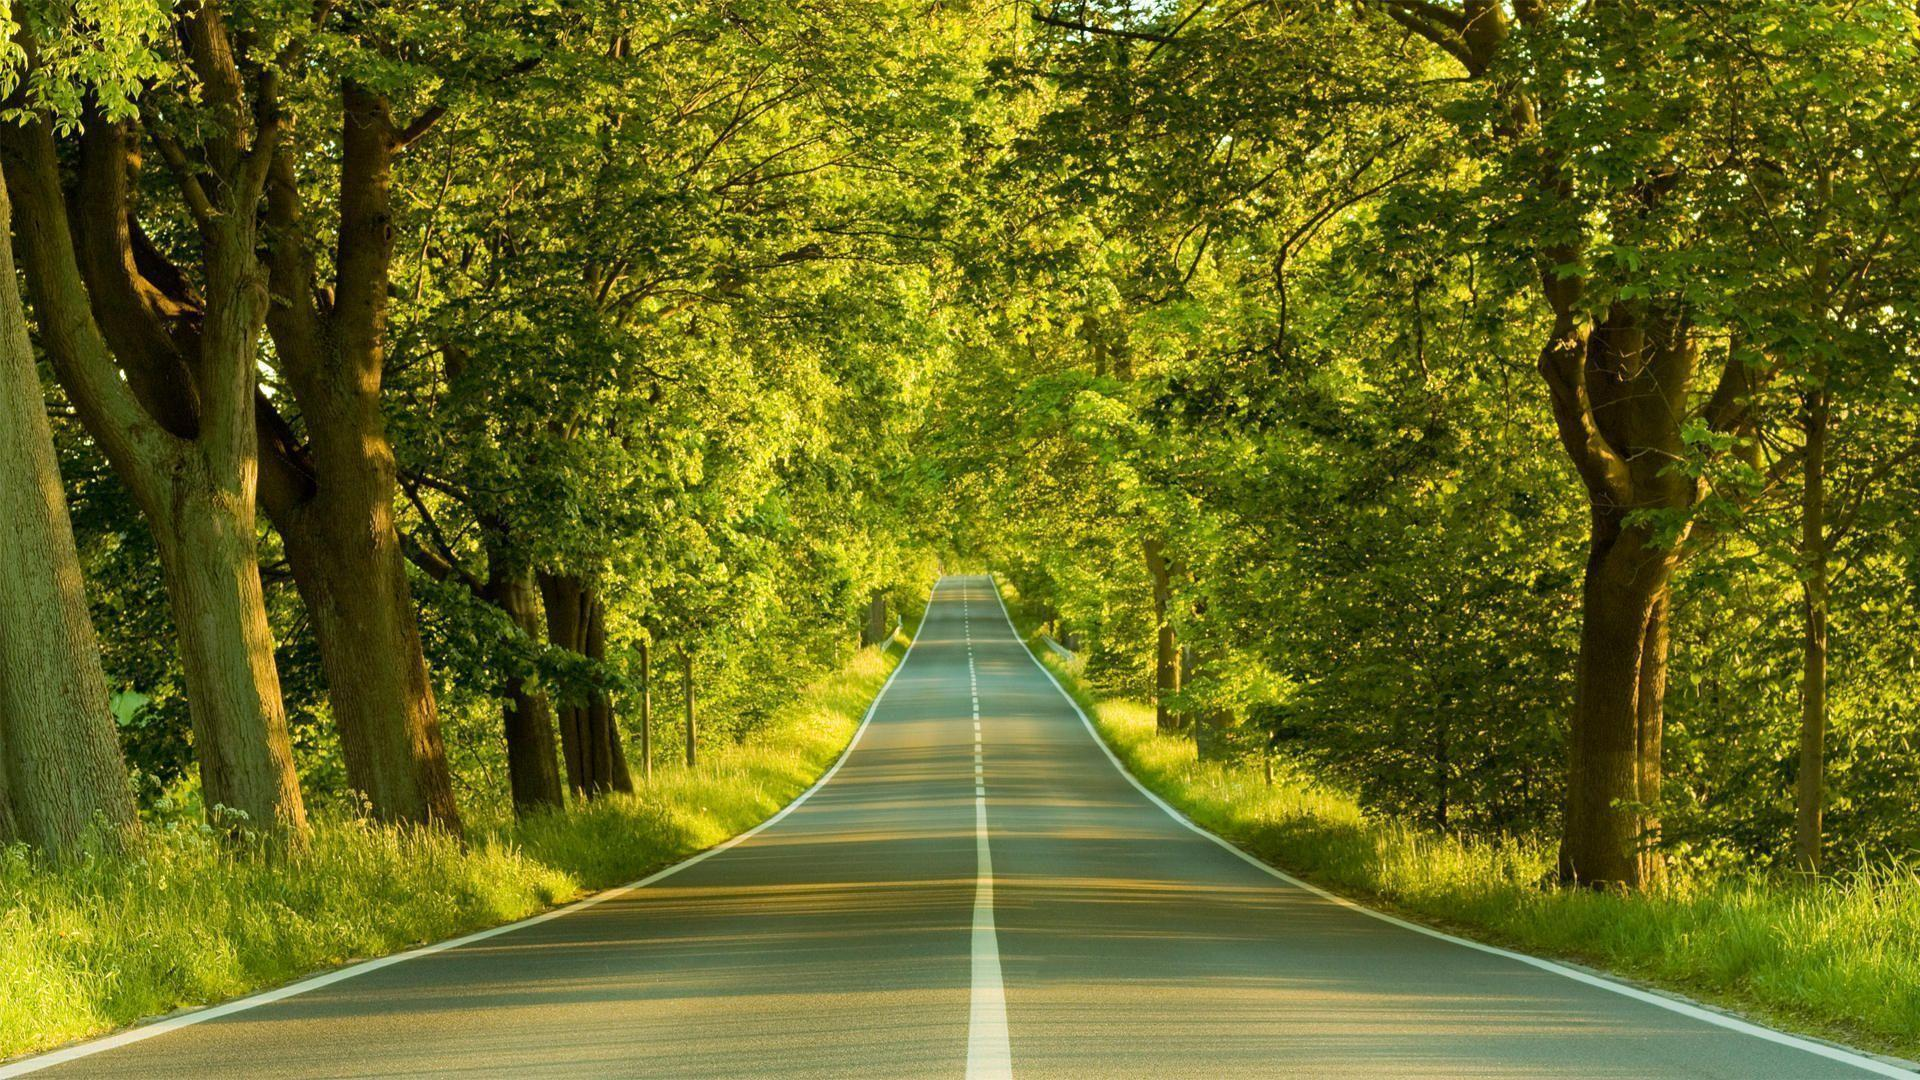 Long Forest Road Wallpapers HD Wallpapers